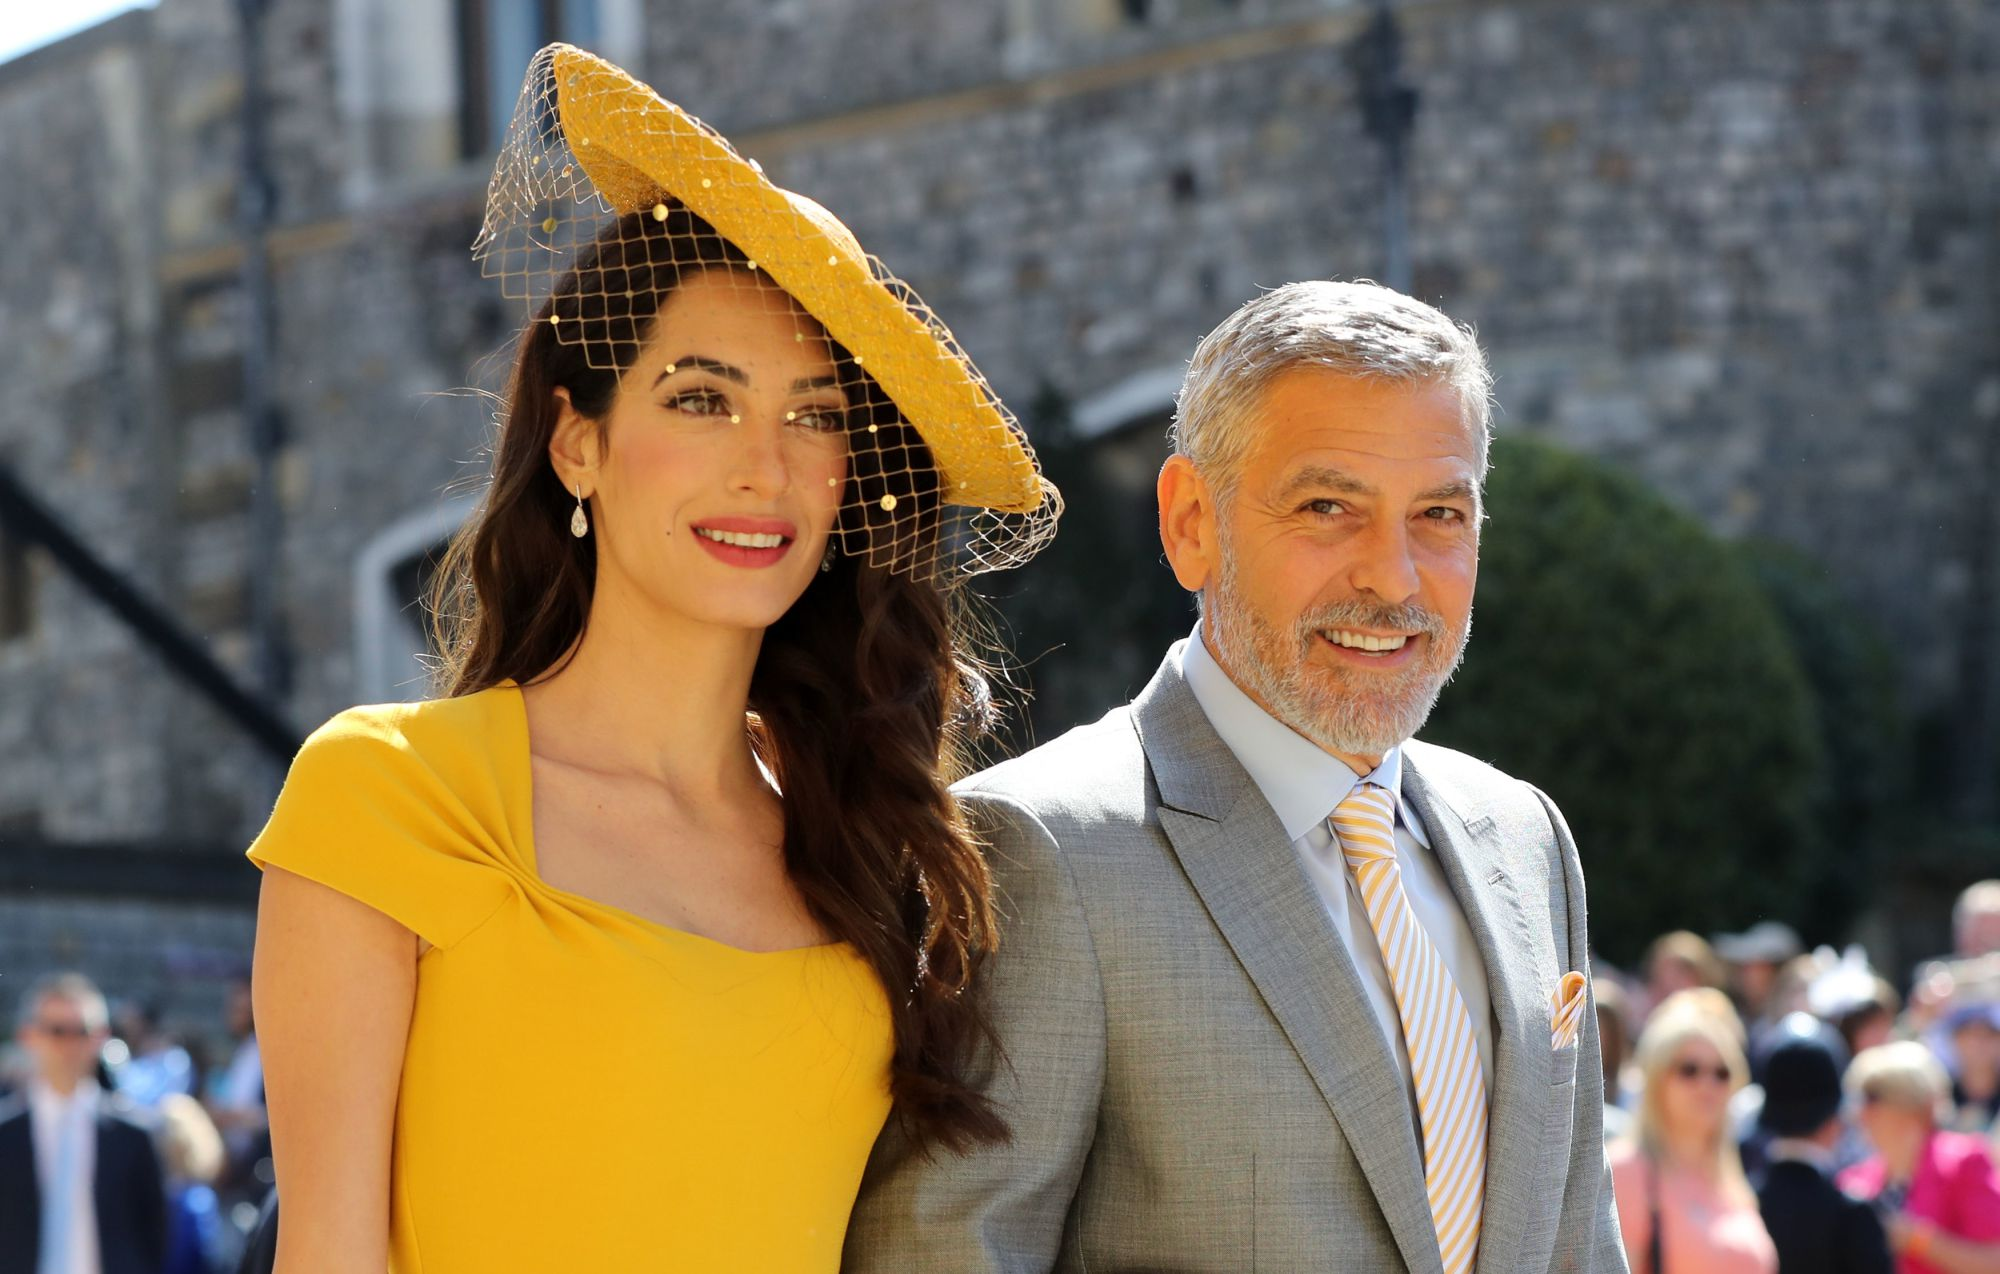 http://fox59.com/2018/05/19/photos-famous-wedding-guests-watch-prince-harry-and-meghan-markle-tie-the-knot/